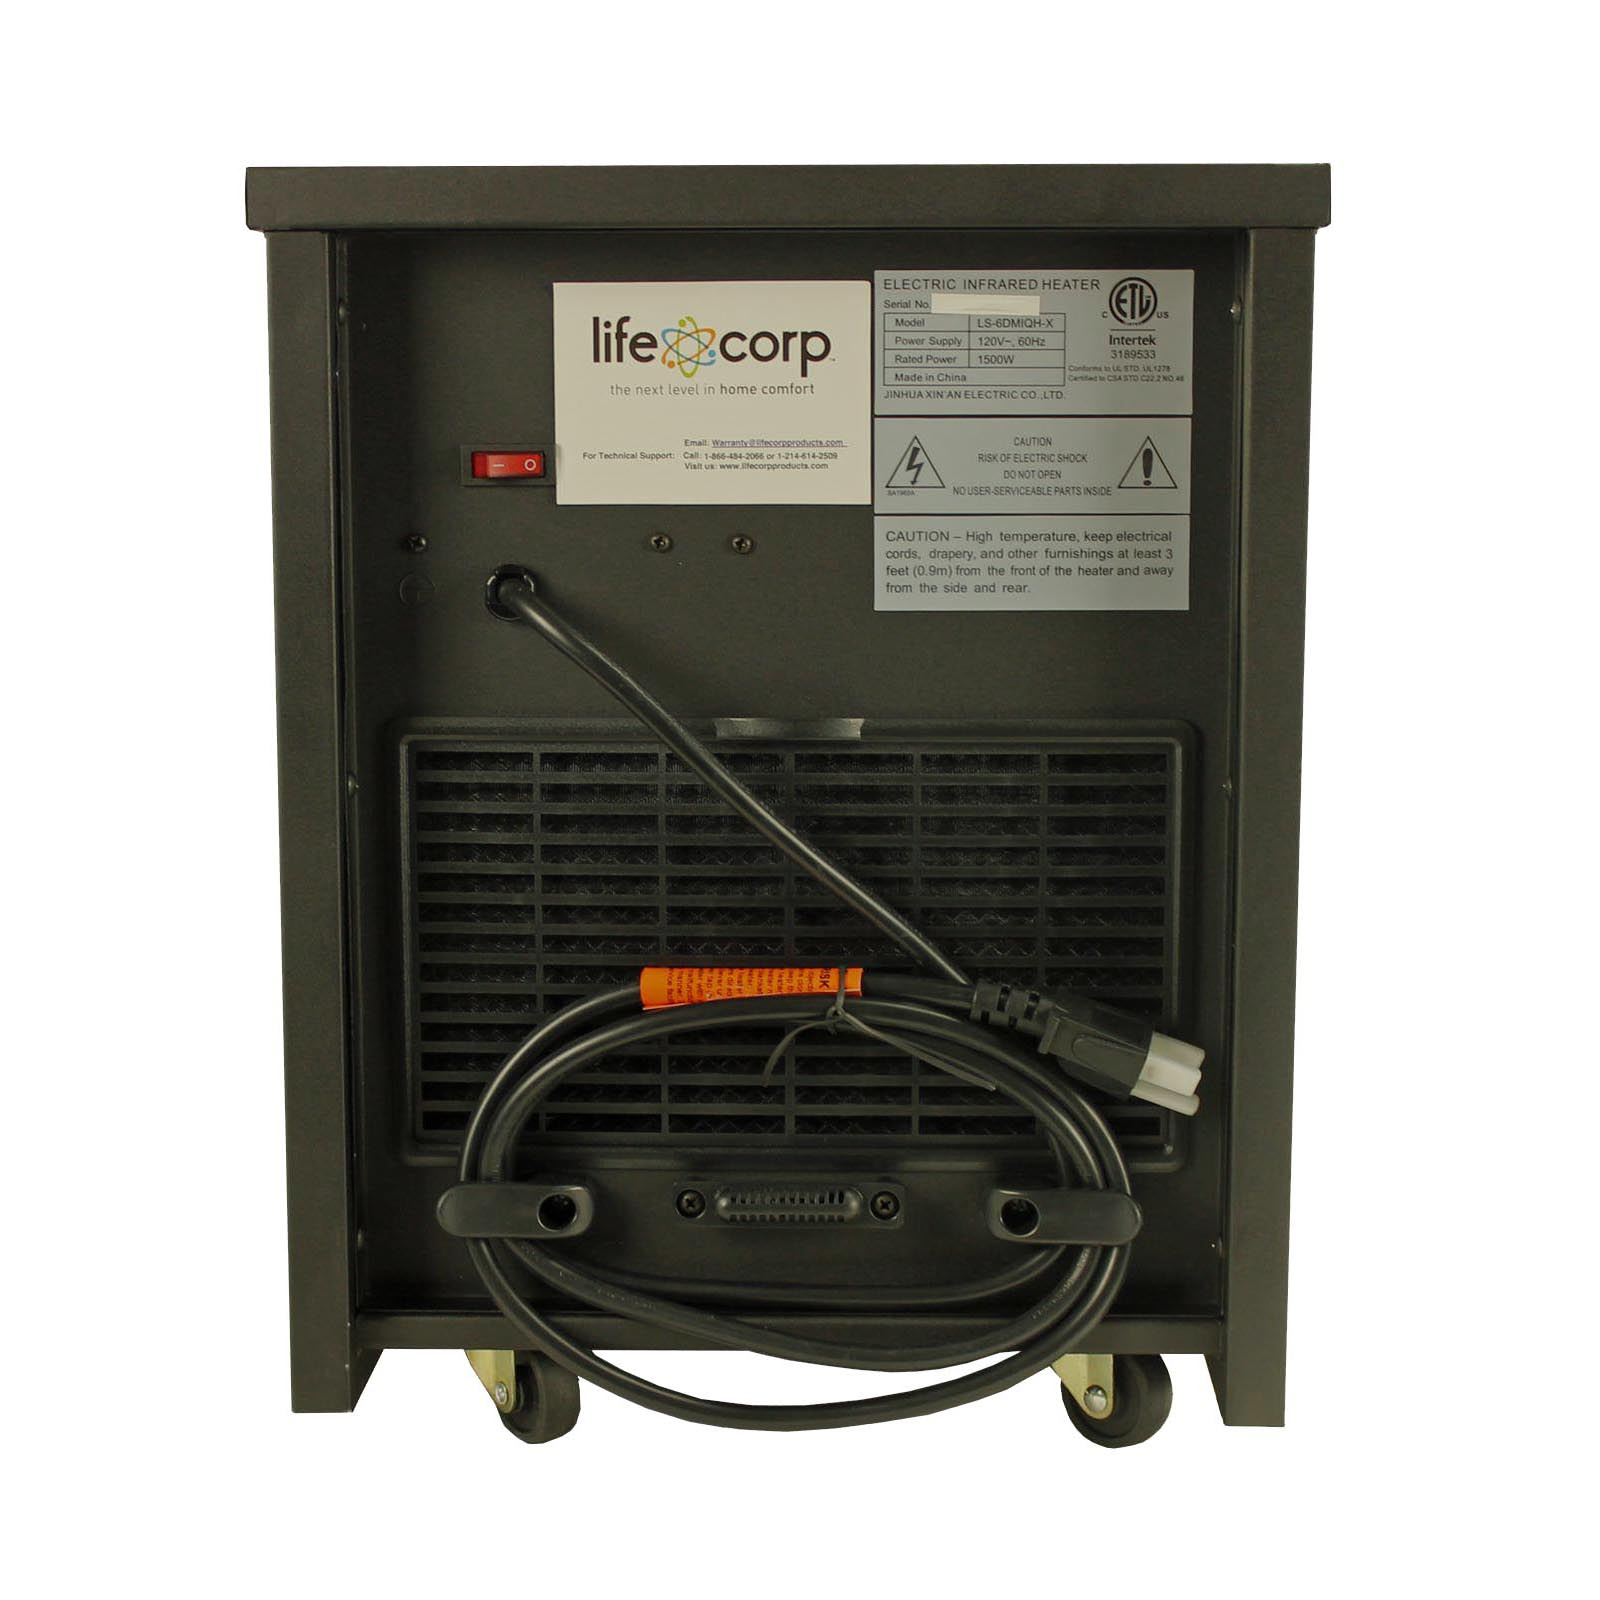 9cc54018 ed53 4250 93b9 53d15abe5e66_1.dc5d74c1b828e6efb4db1bf90f02a429 lifesmart lifepro large room series 6 element infrared space  at fashall.co